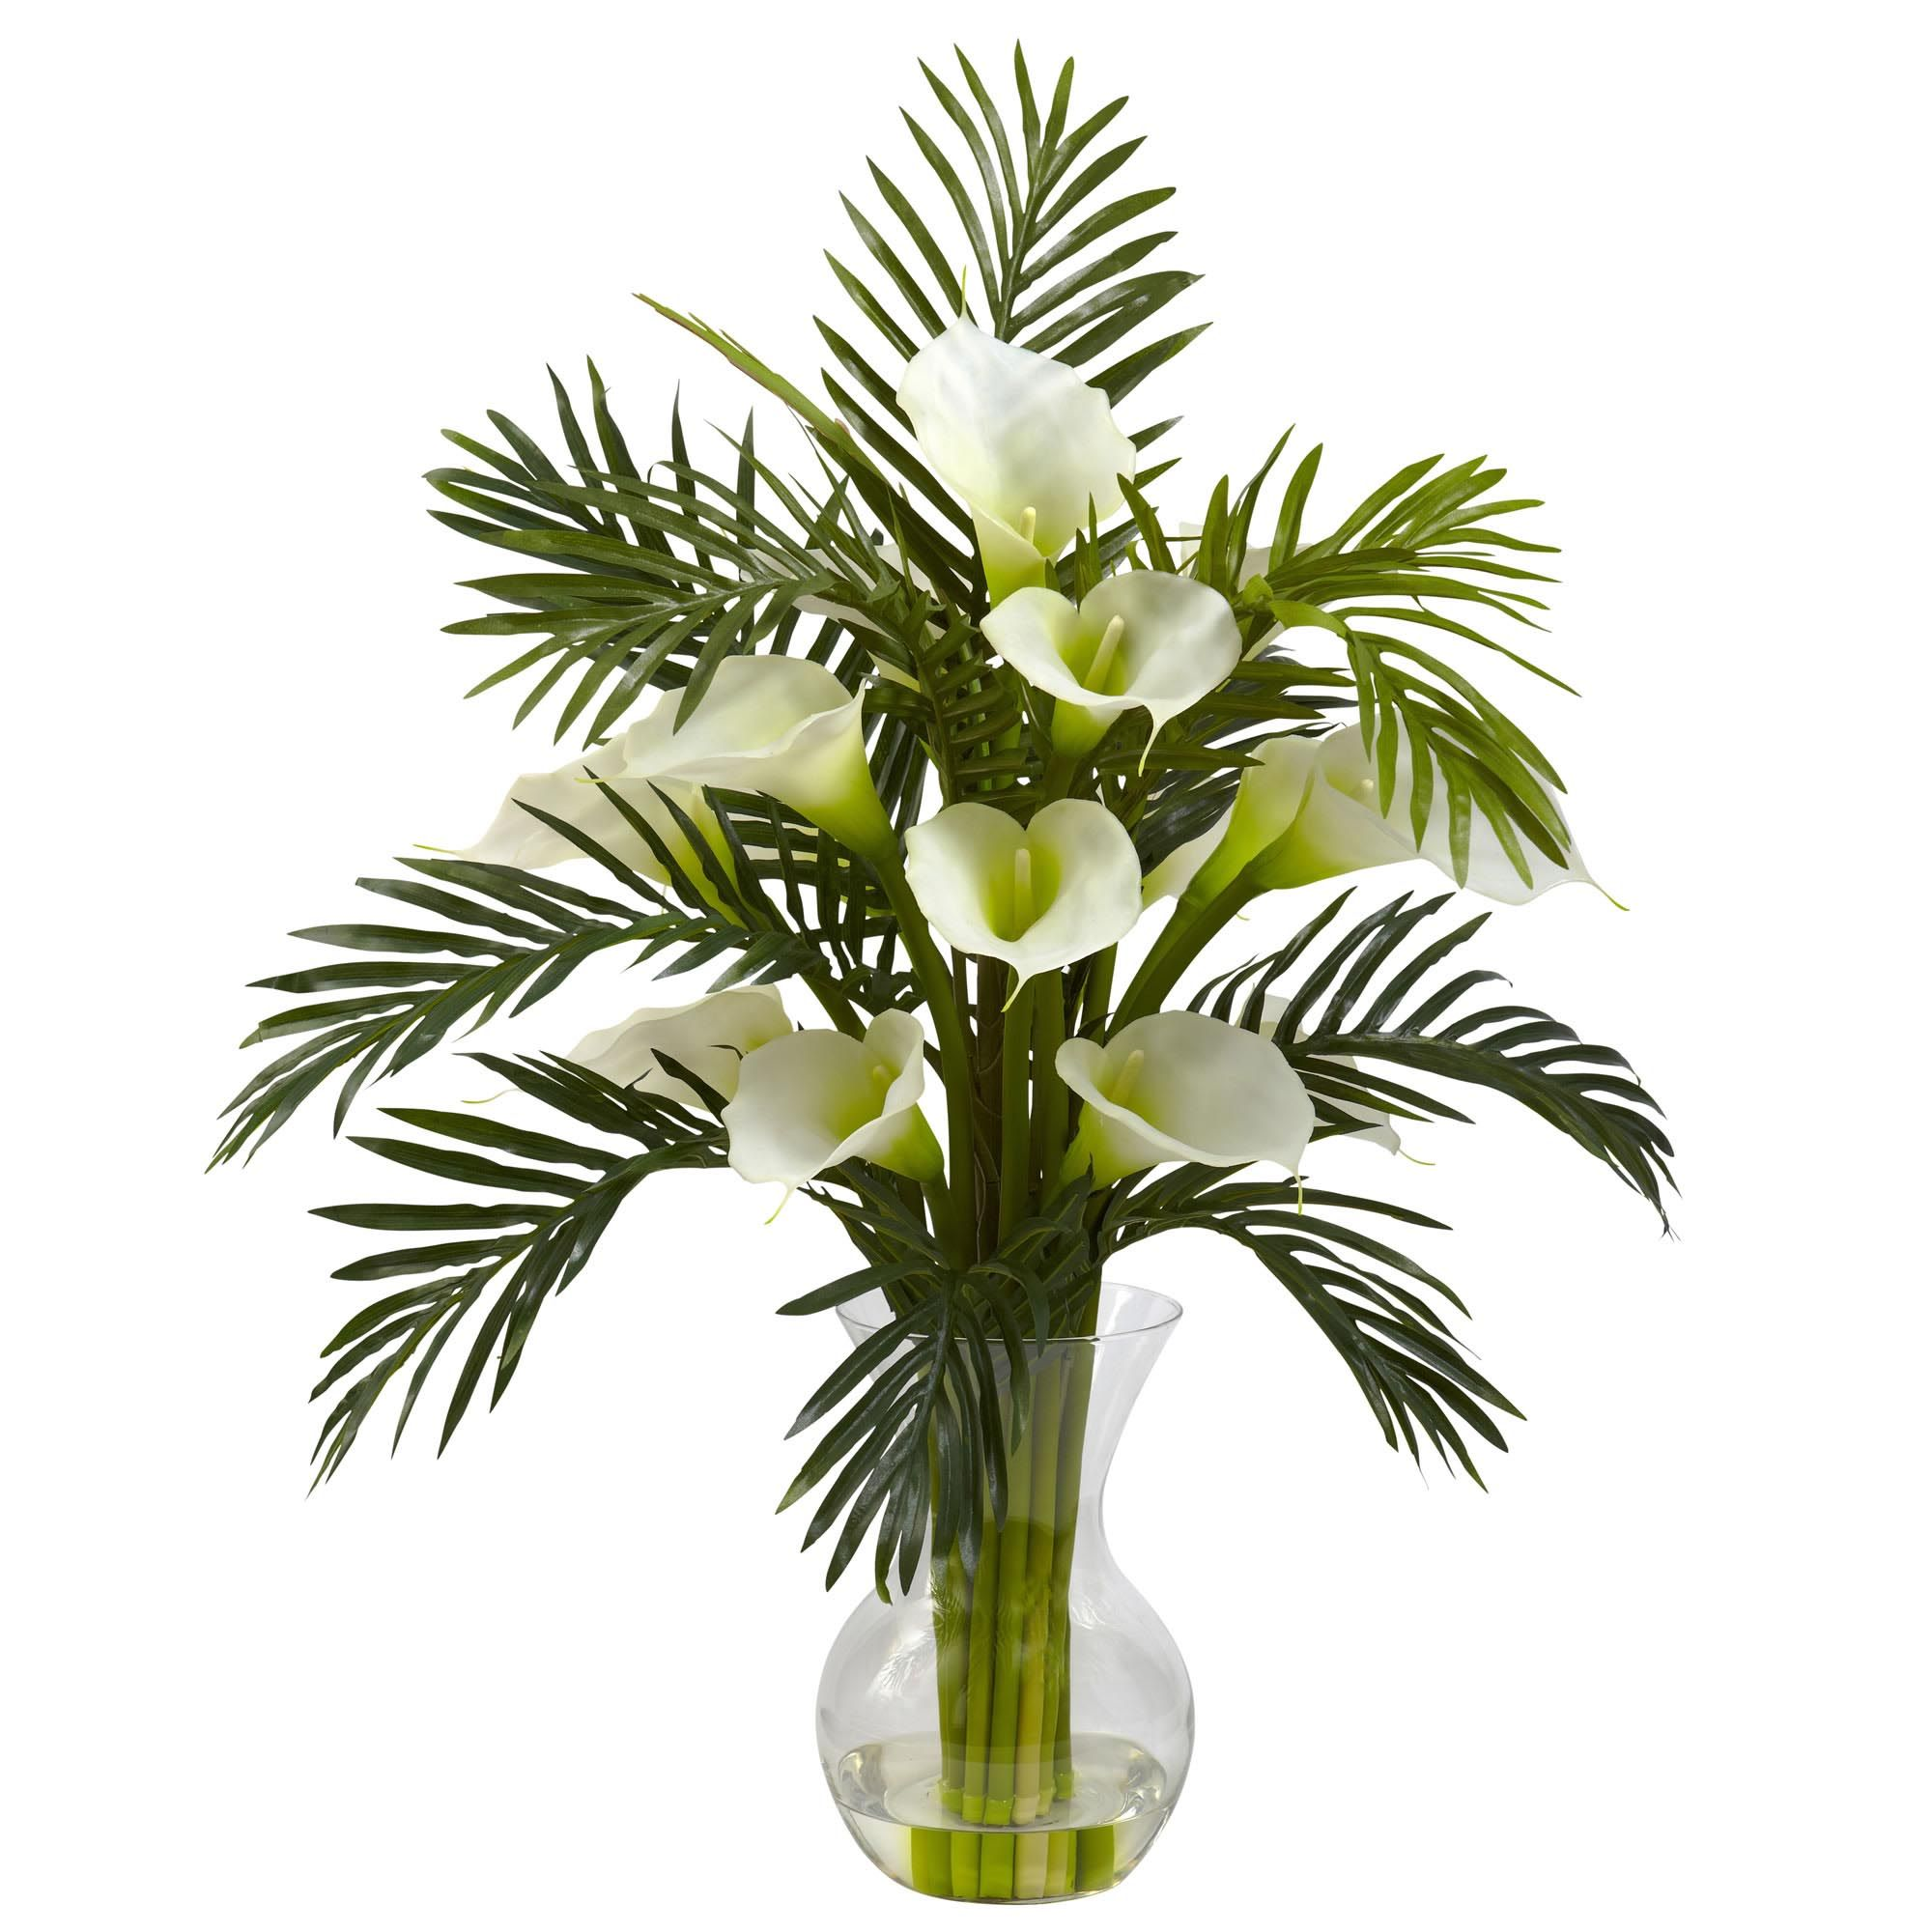 27 inch artificial calla lily palm combo in vase multiple colors 27 inch artificial calla lily palm combo in vase multiple colors 1301 nearly natural izmirmasajfo